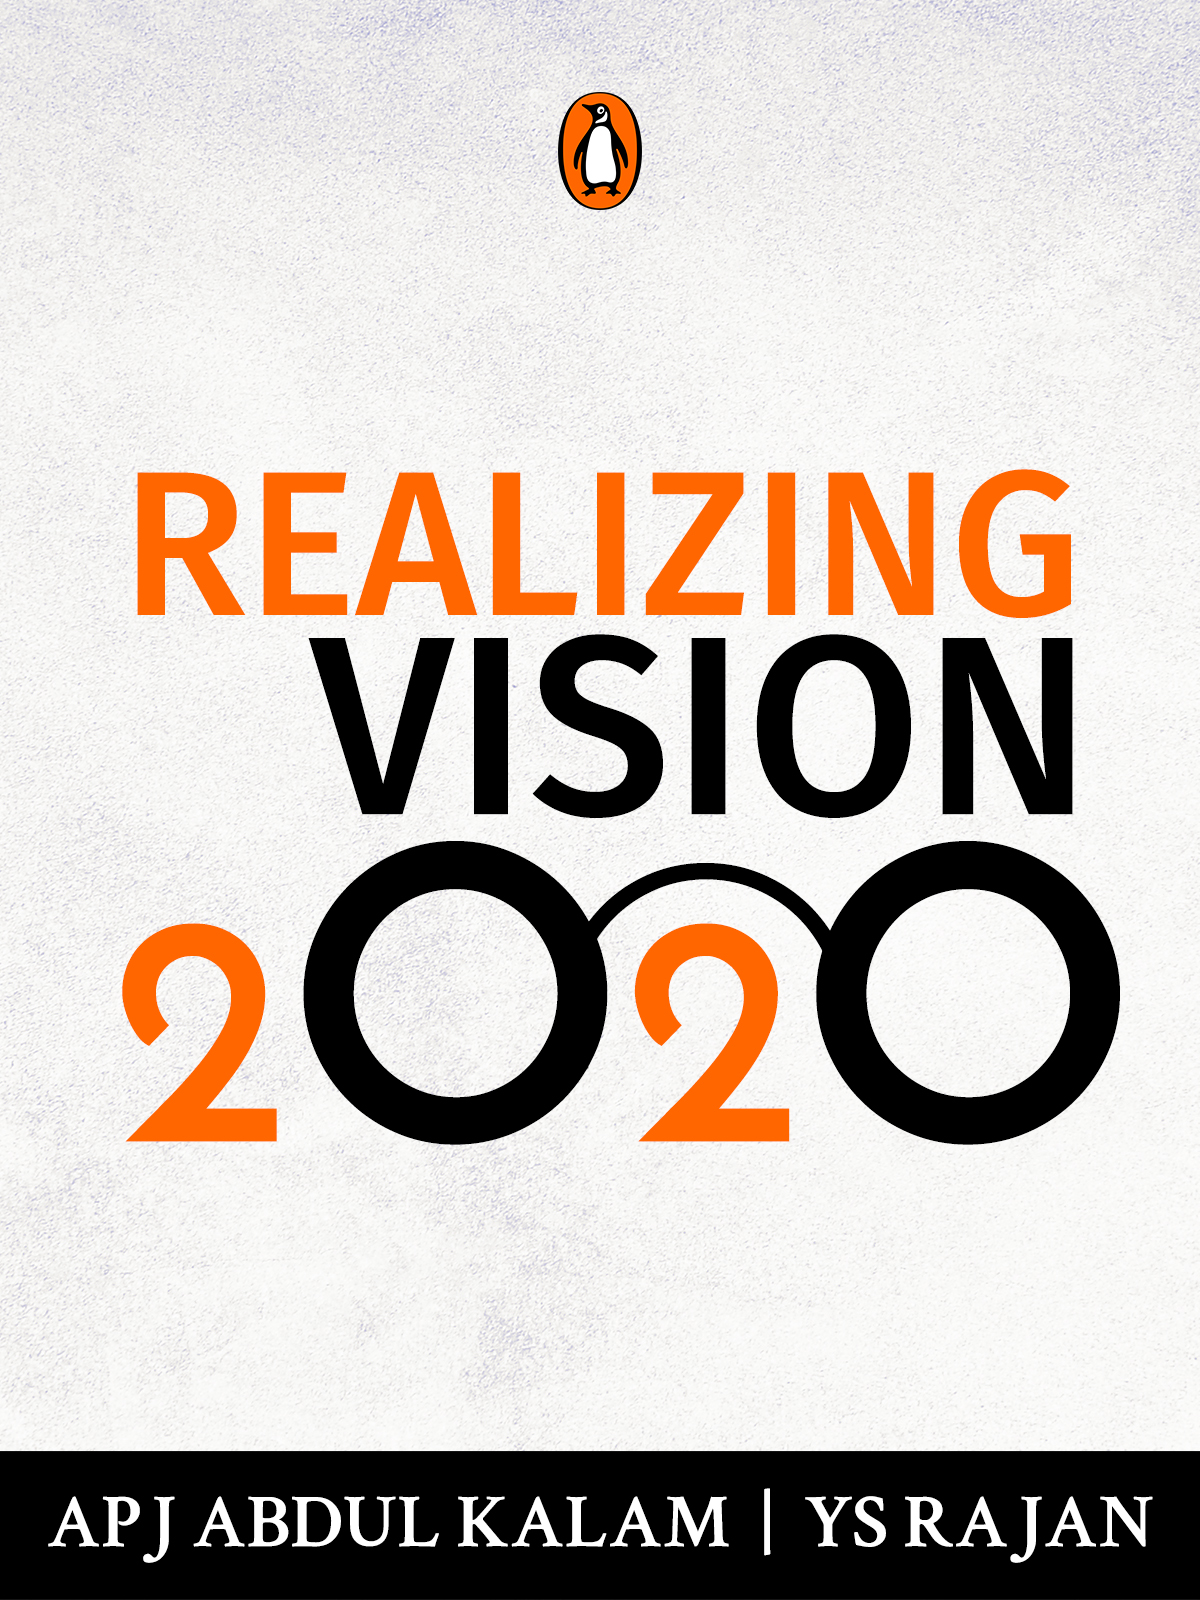 Realizing Vision 2020